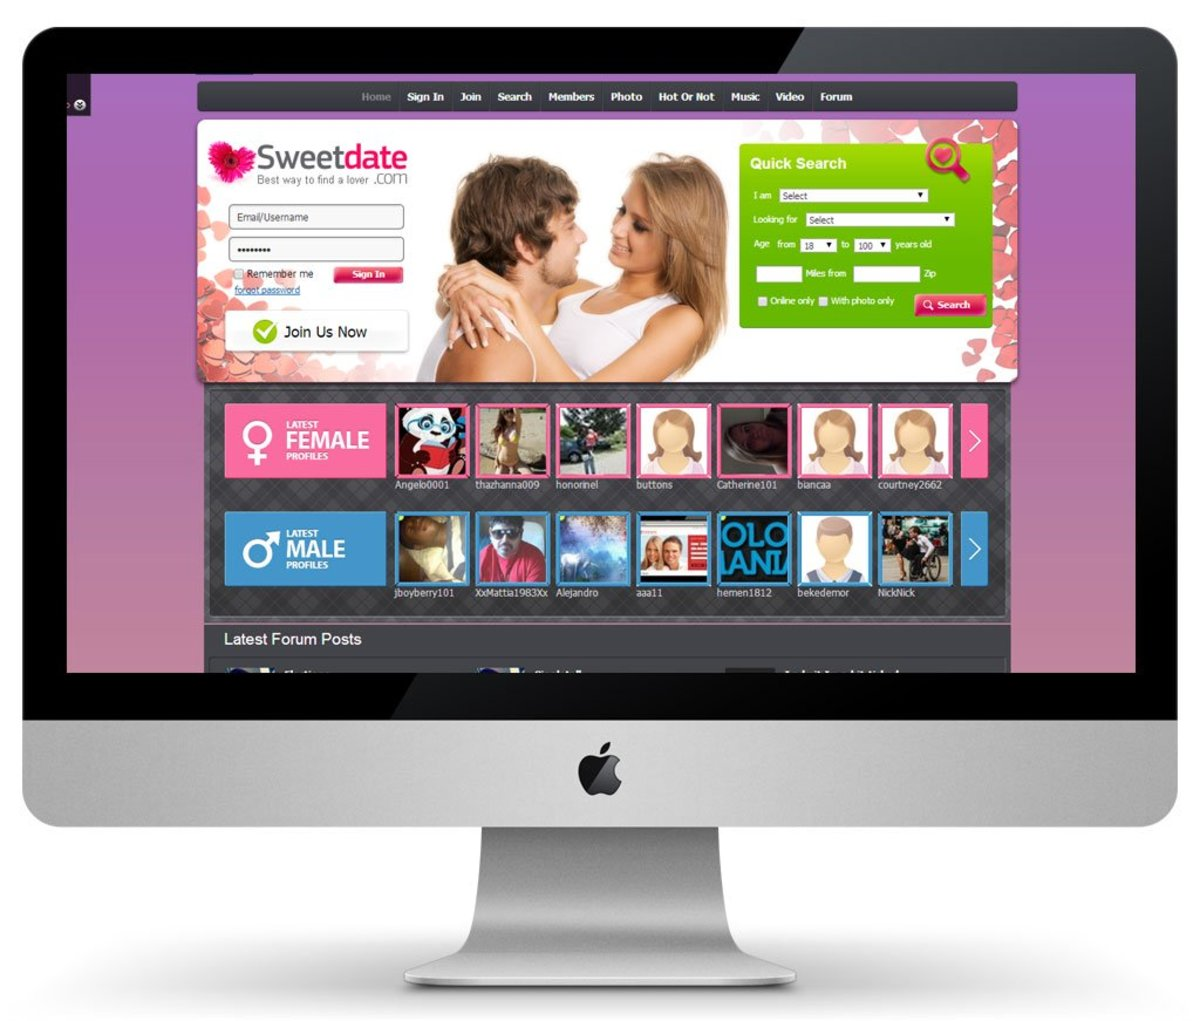 Online dating sites business model